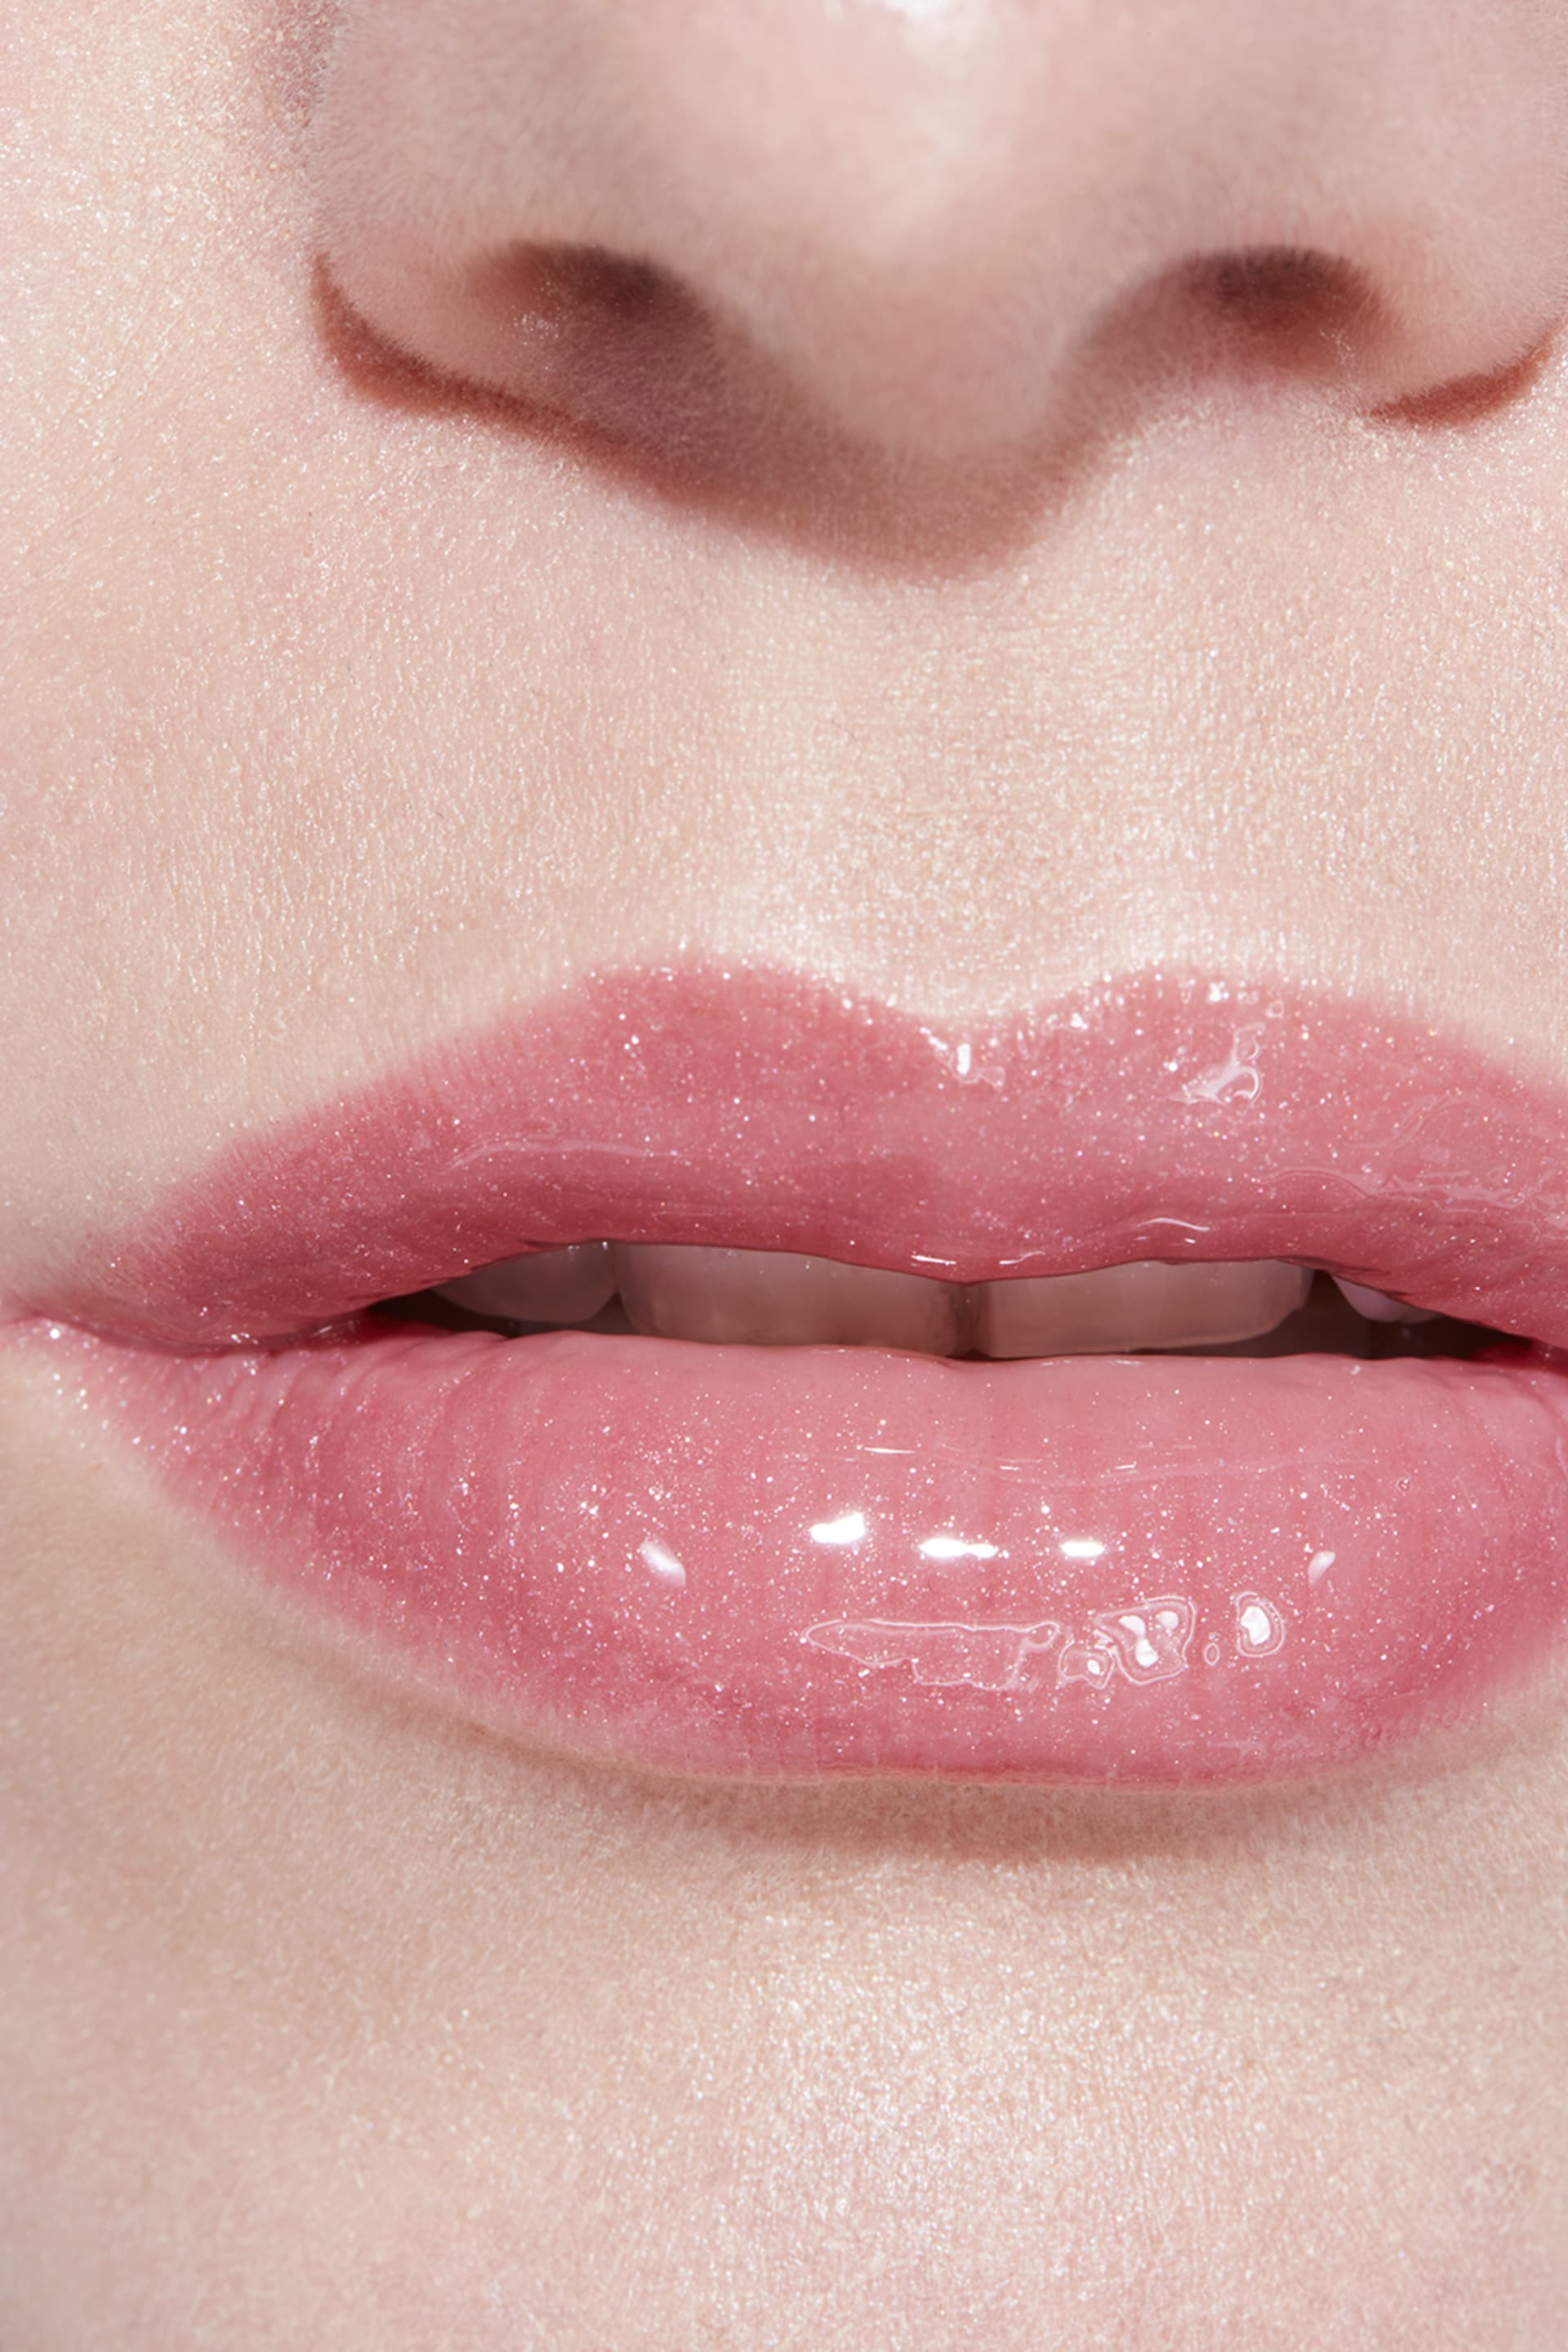 Visuel d'application maquillage 3 - ROUGE COCO GLOSS 96 - MAGNOLIA